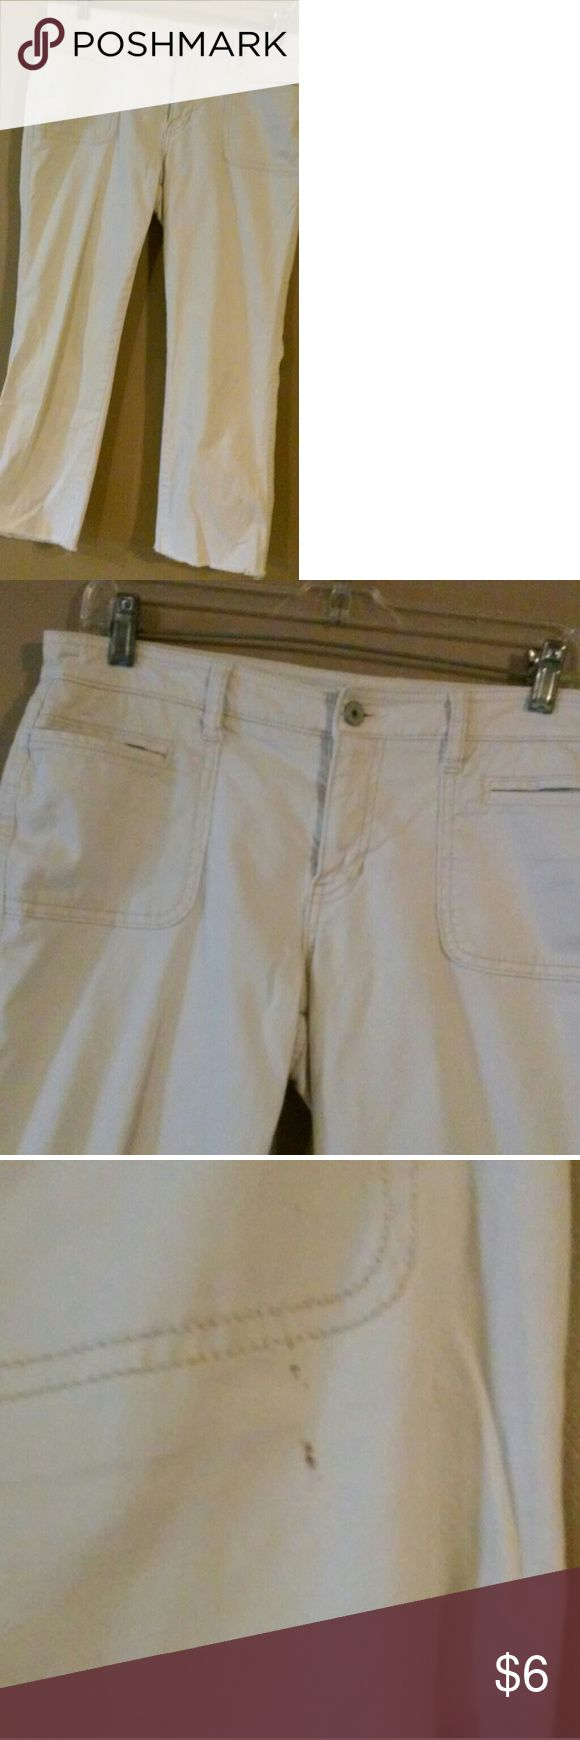 Gap Khaki capris size 8 Pictures show the front and back these are so cute and go with anything Pics show stains they are small one is on front bottom leg (last pic) other is in pic 3 Price reflects stains and wear these have alot of wear left  *Smoker GAP Pants Ankle & Cropped